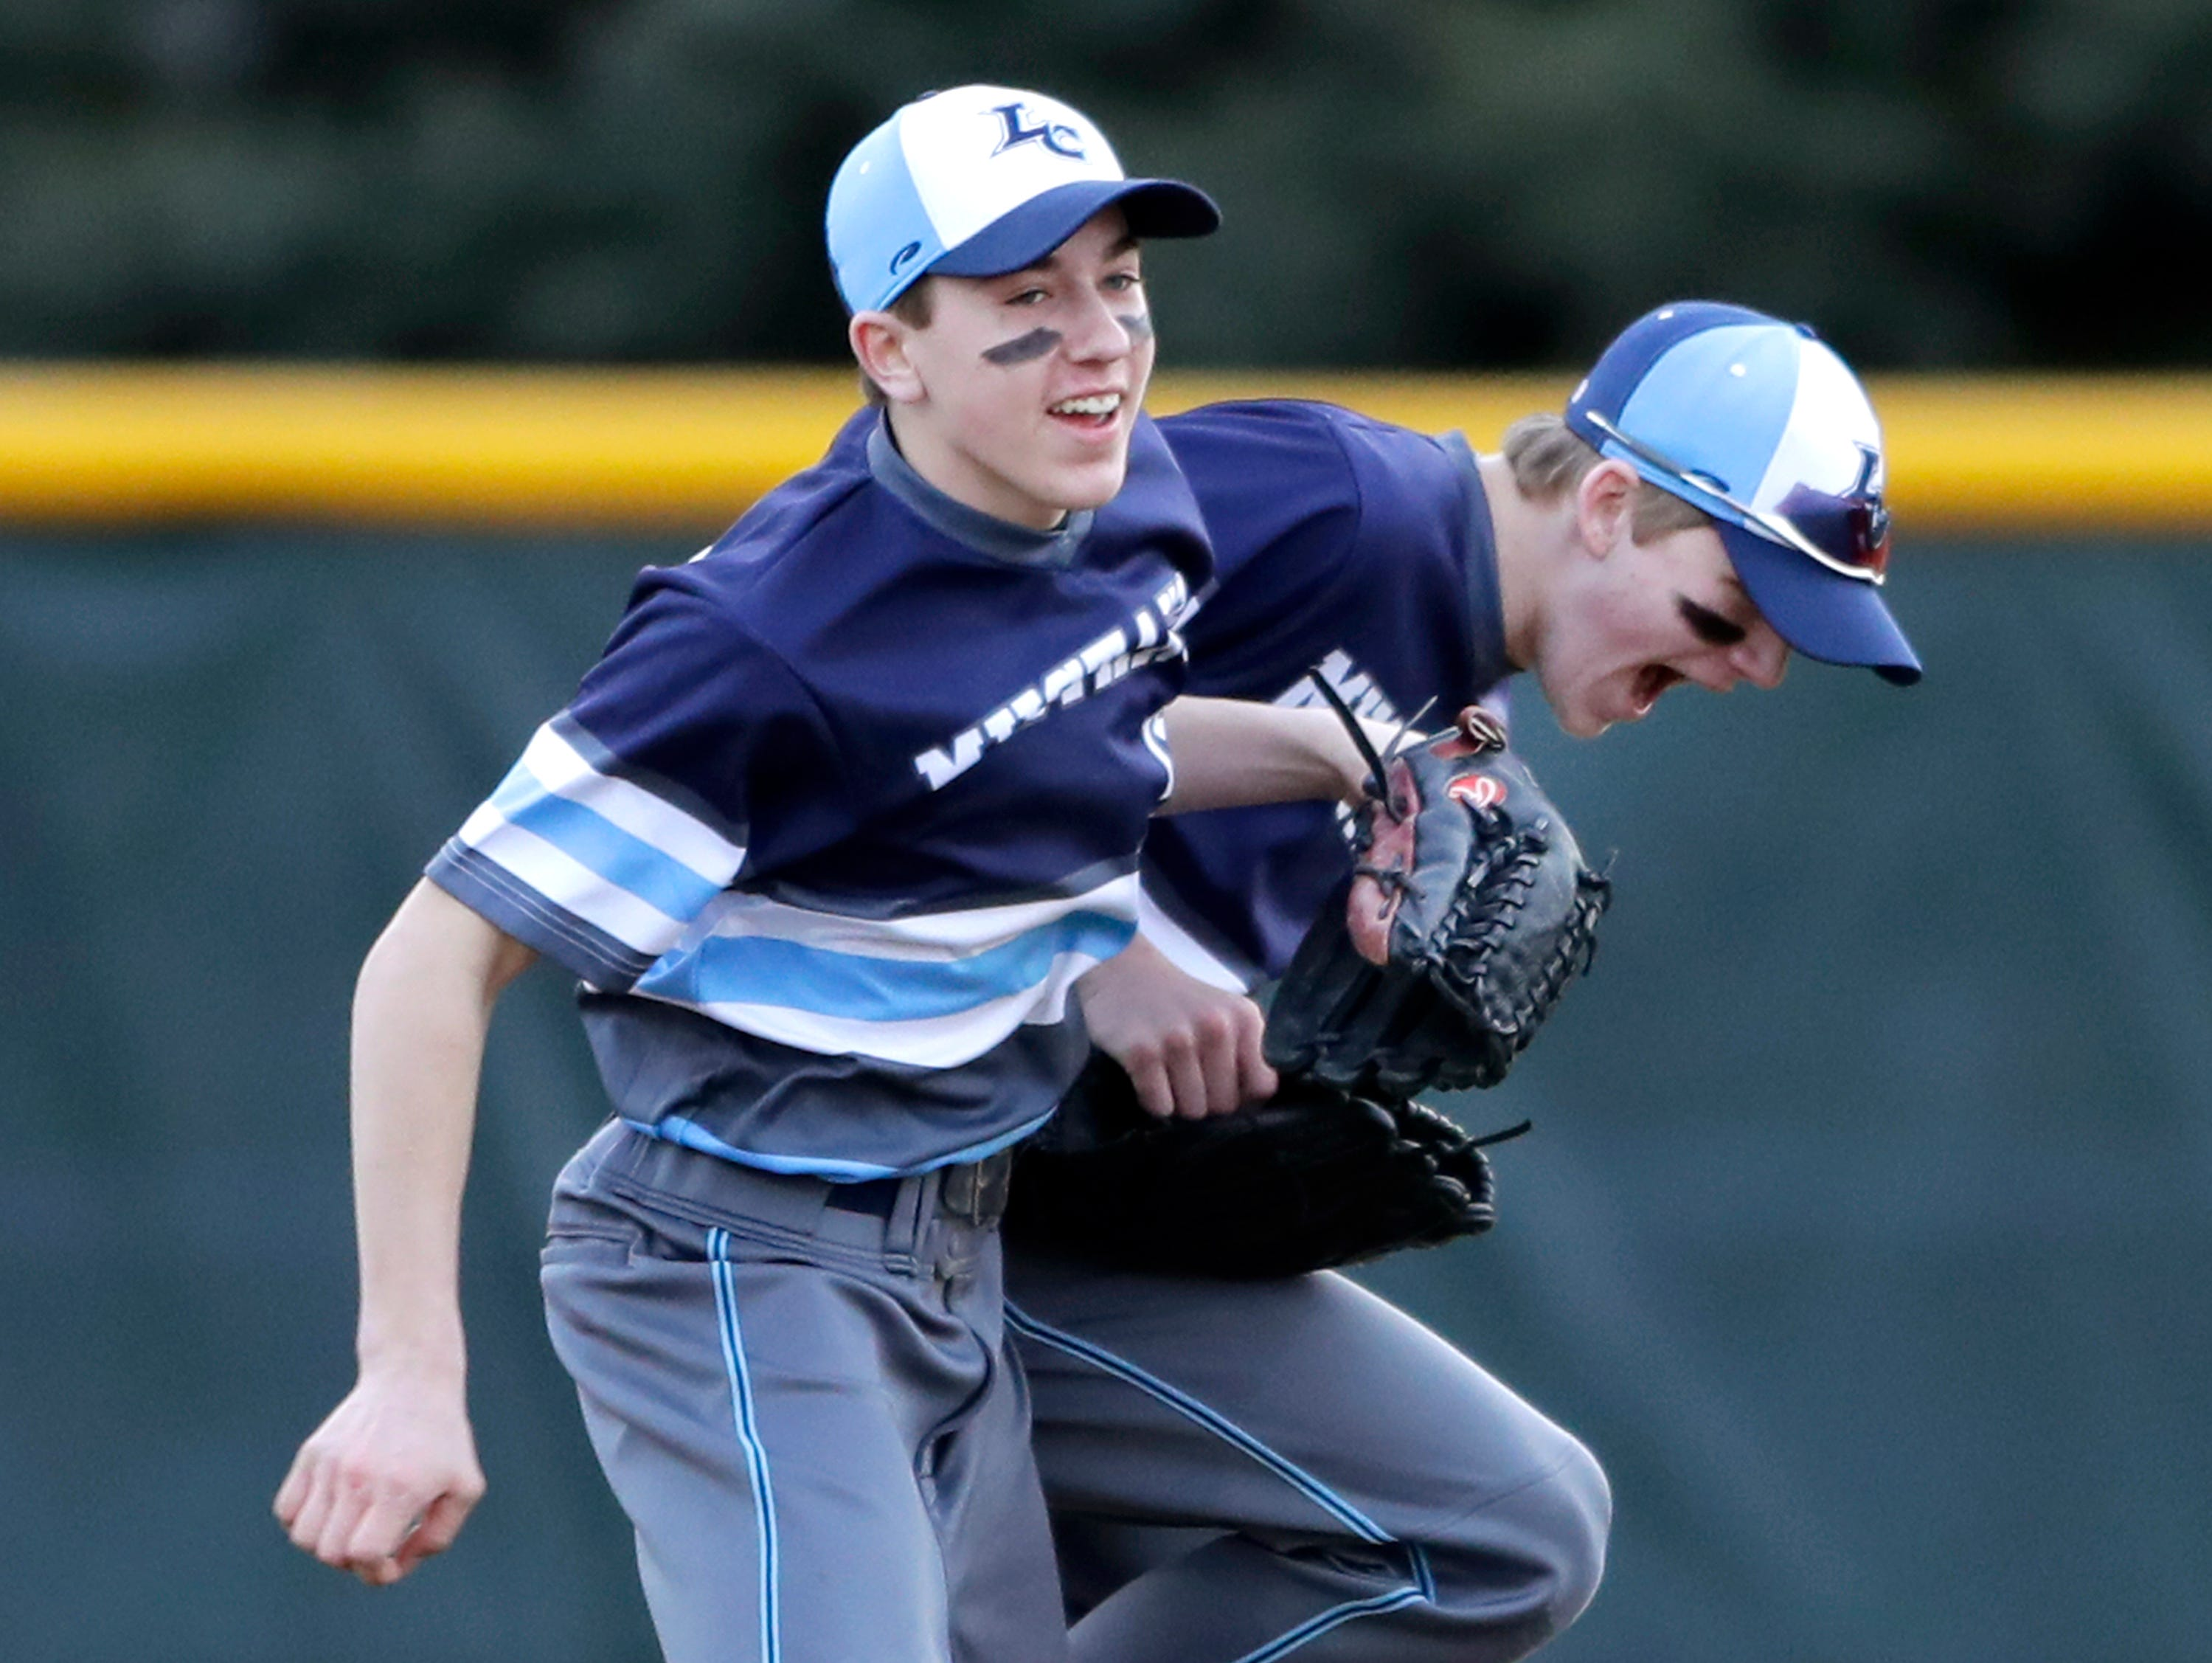 Little Chute High School's #15 Jacob Weigman, left, and #6 Nolan Lamers against St. Mary Catholic High School during their baseball game on Friday, March 29, 2019, in Neenah, Wis. Little Chute defeated St. Mary Catholic 2 to 1.Wm. Glasheen/USA TODAY NETWORK-Wisconsin.